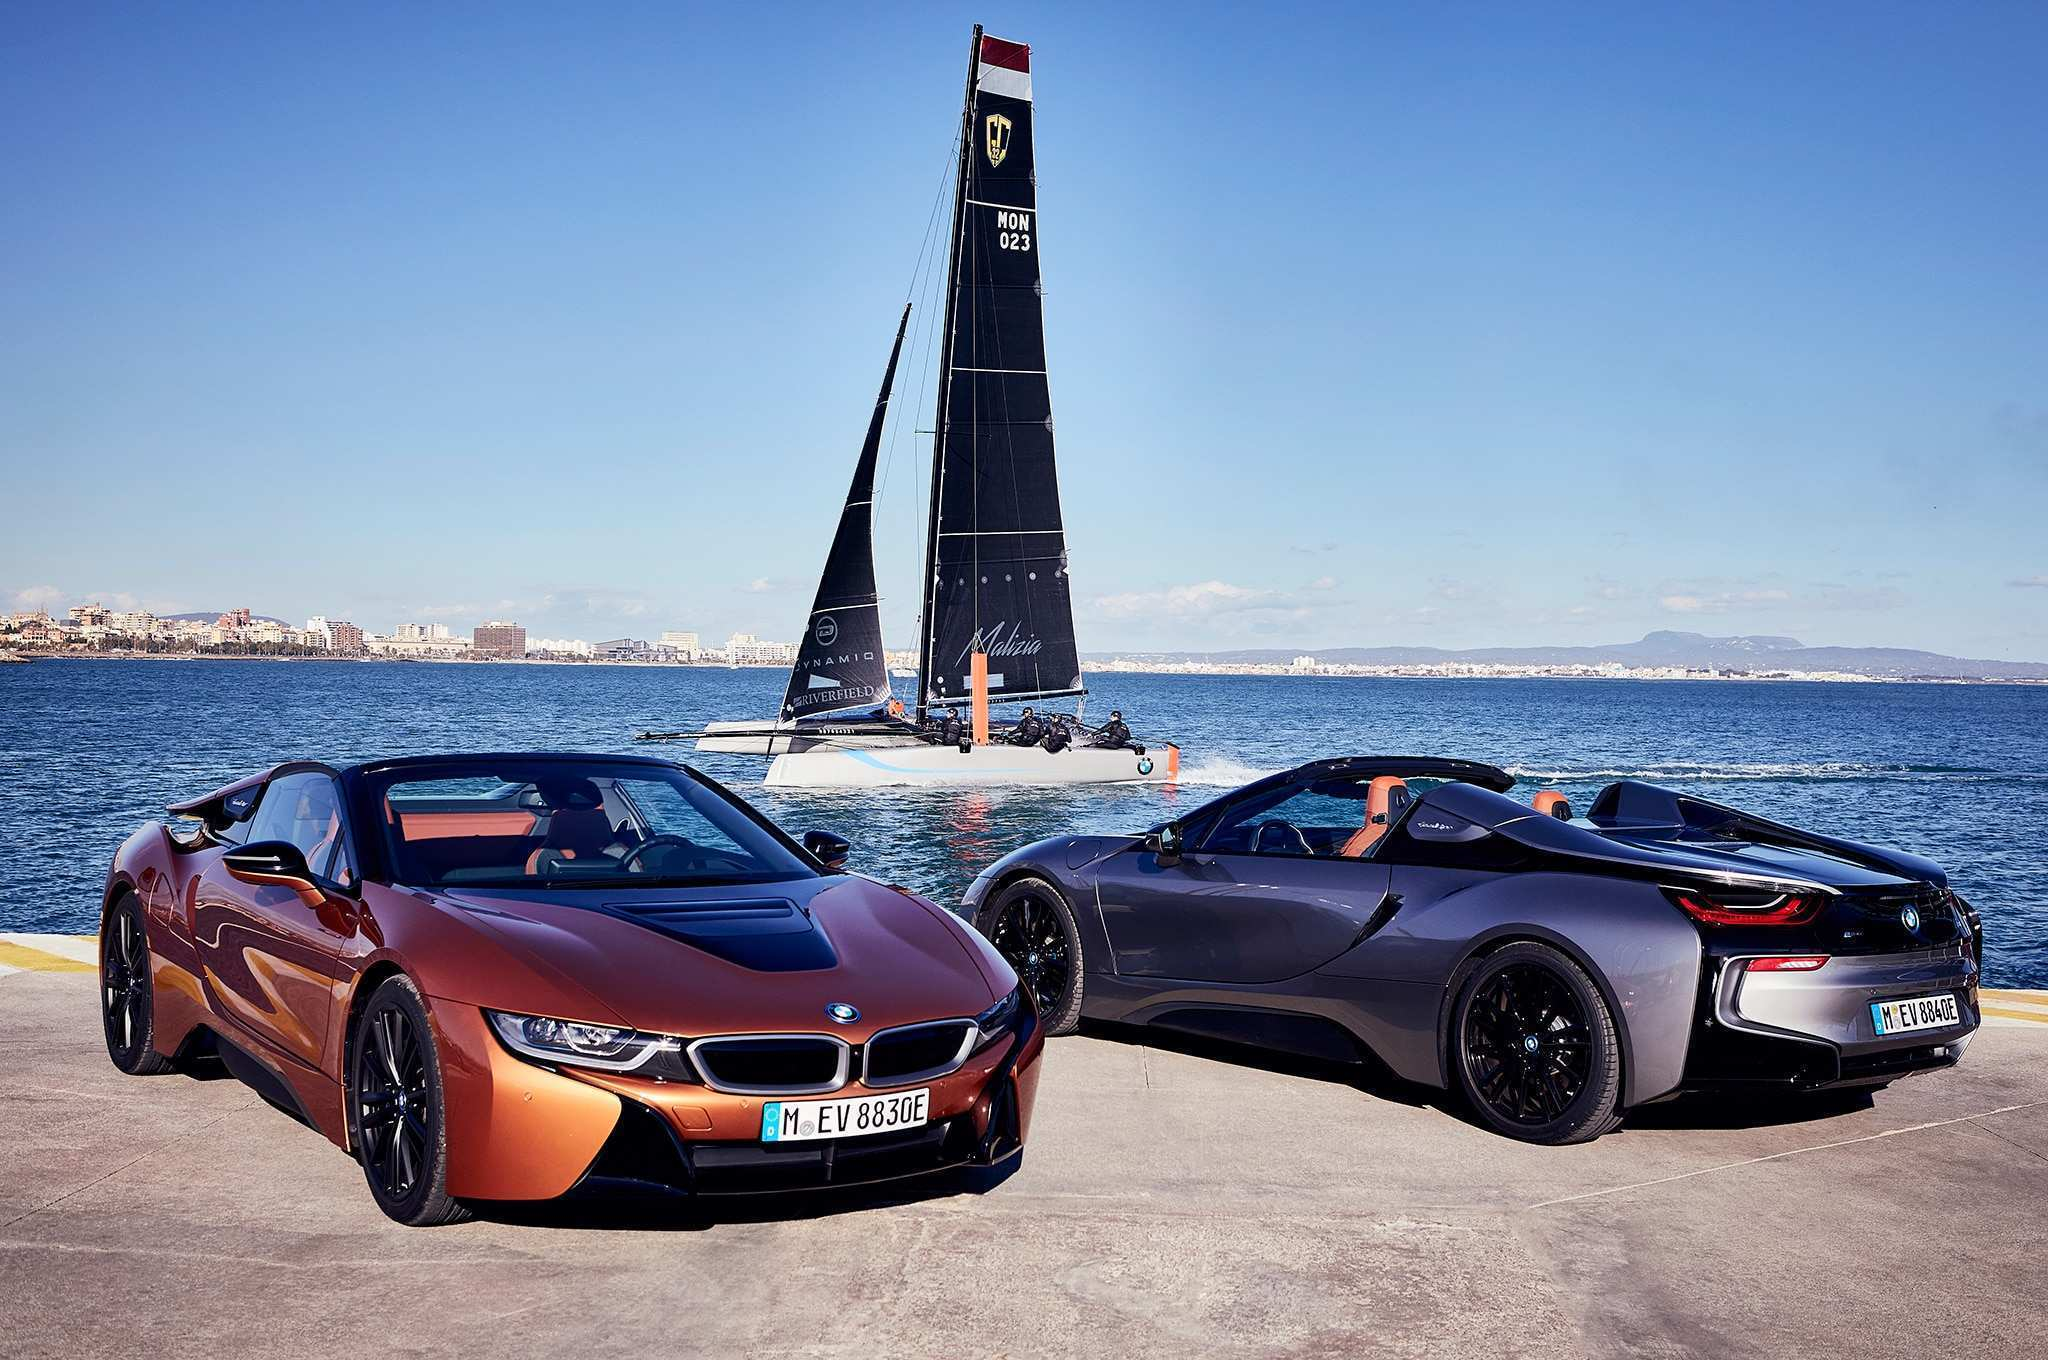 52 Gallery of 2019 Bmw I8 Roadster Configurations by 2019 Bmw I8 Roadster